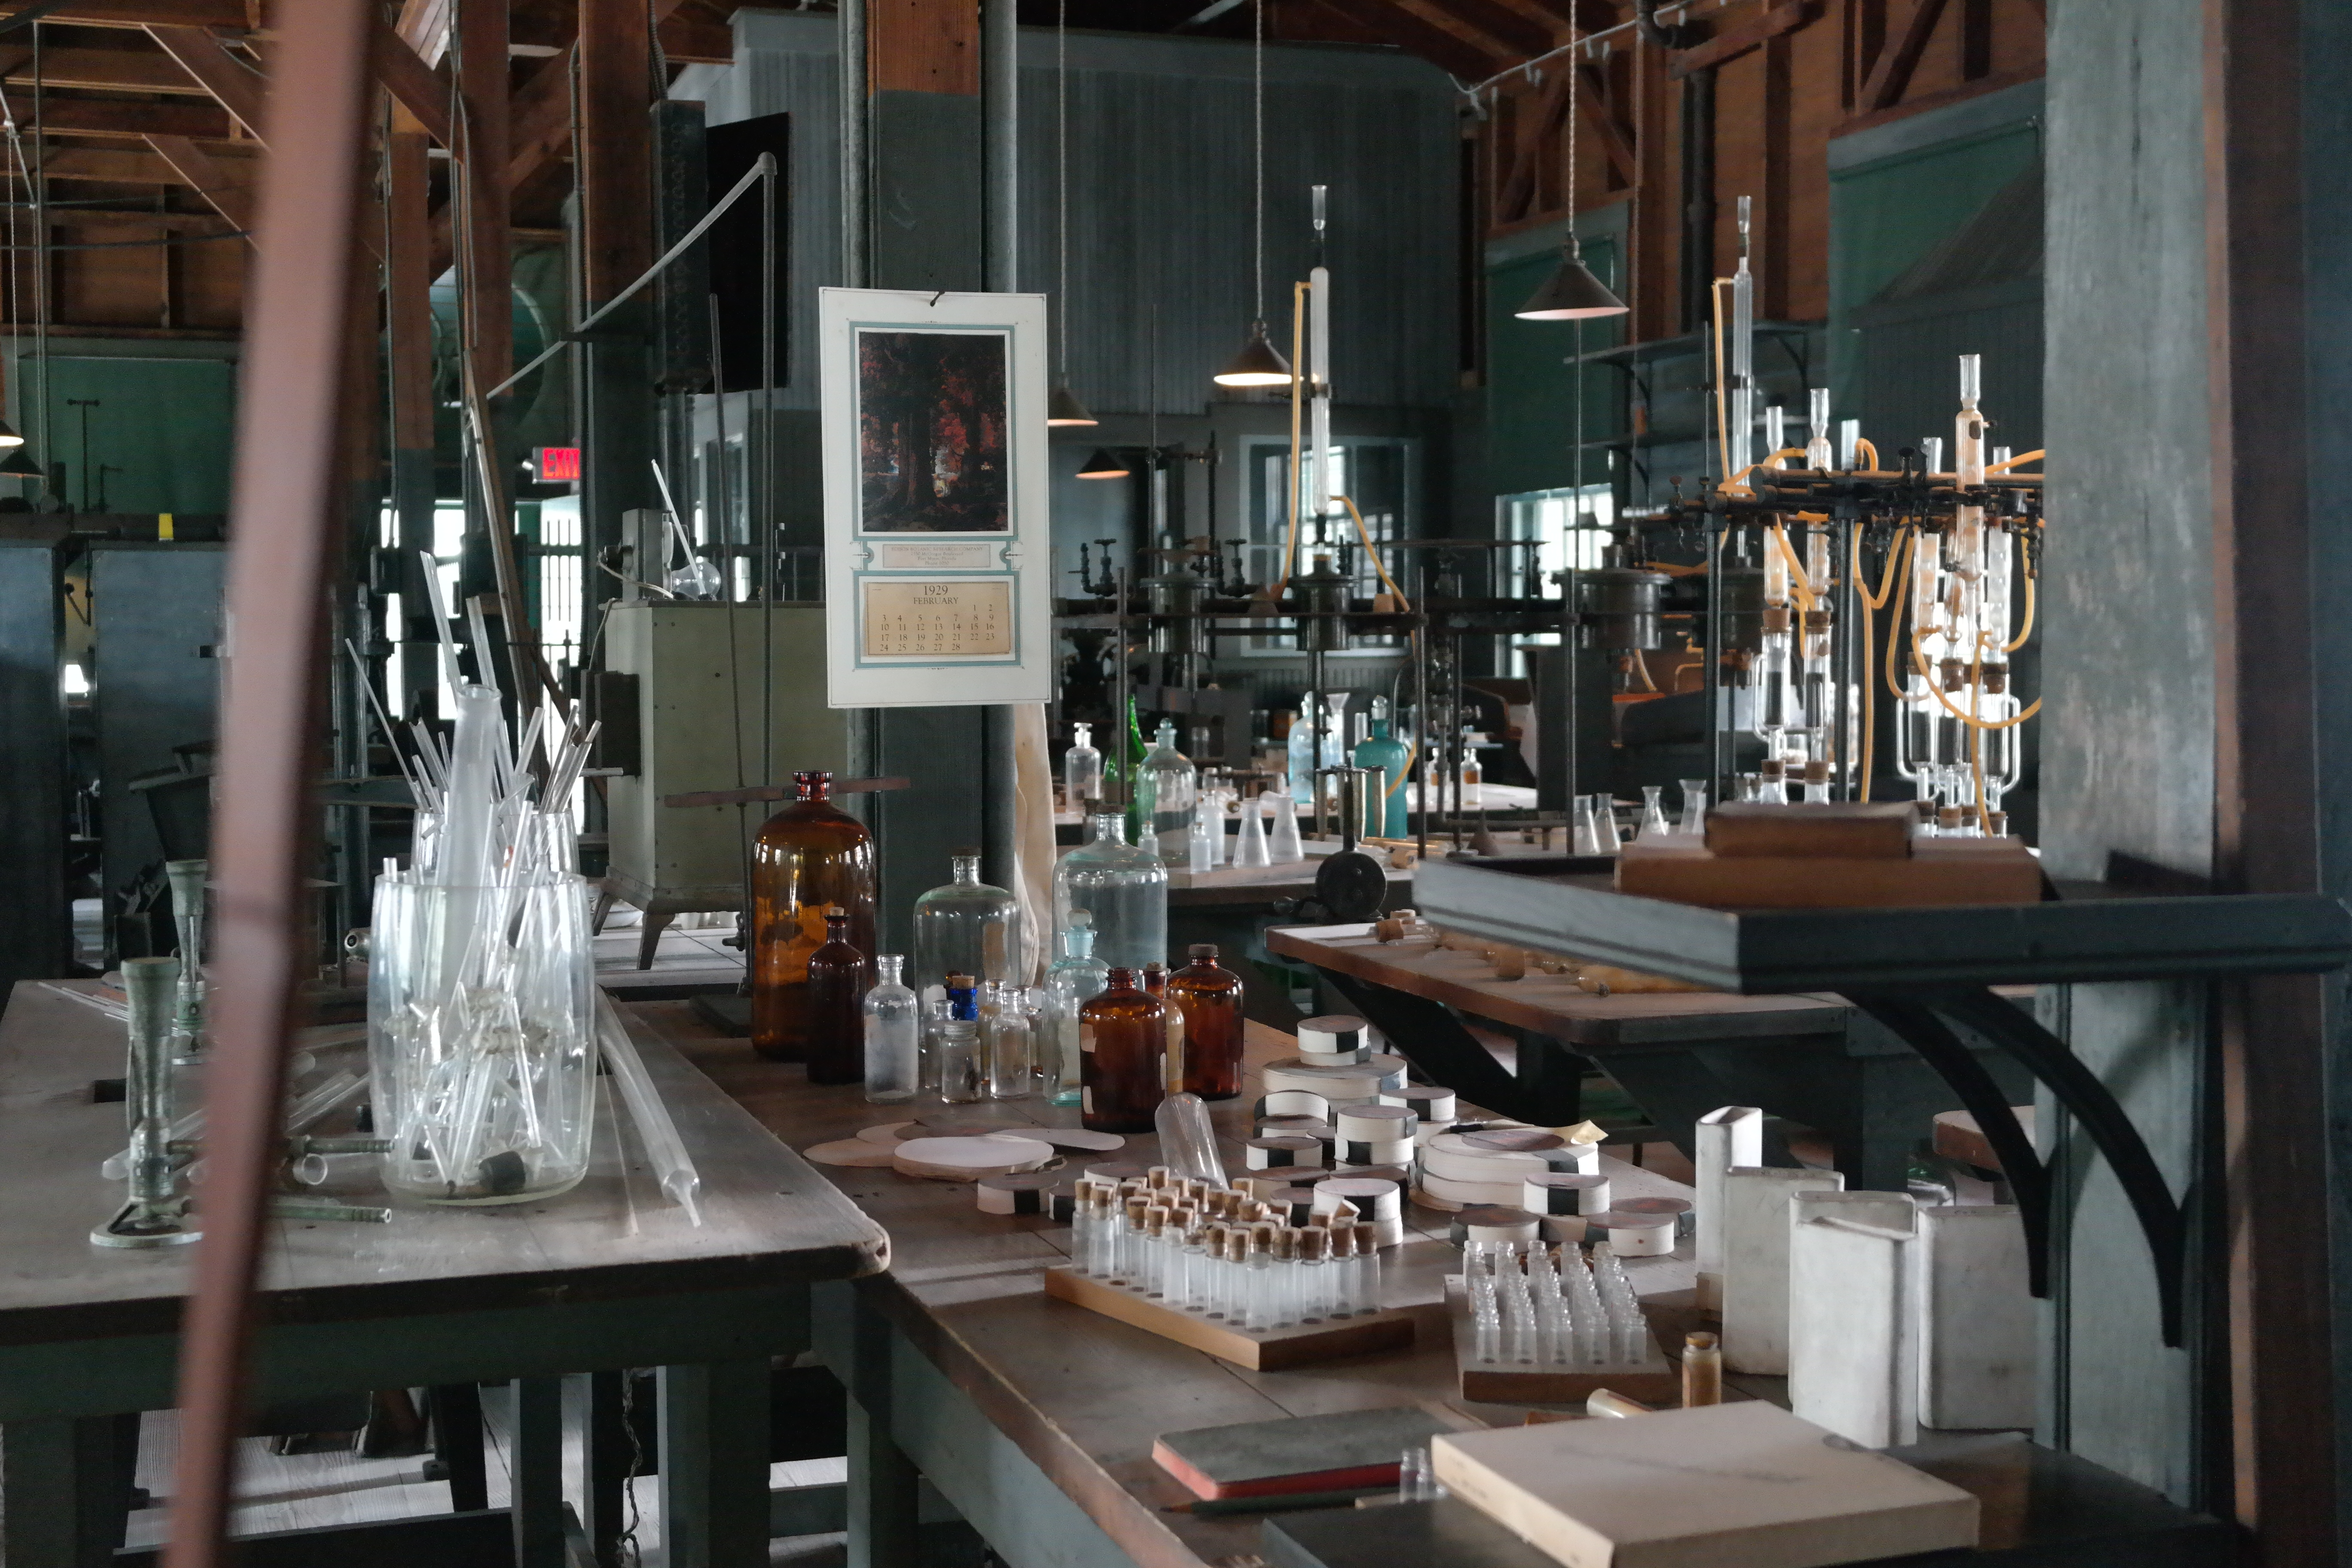 Edison's Laboratory In Fort Myers